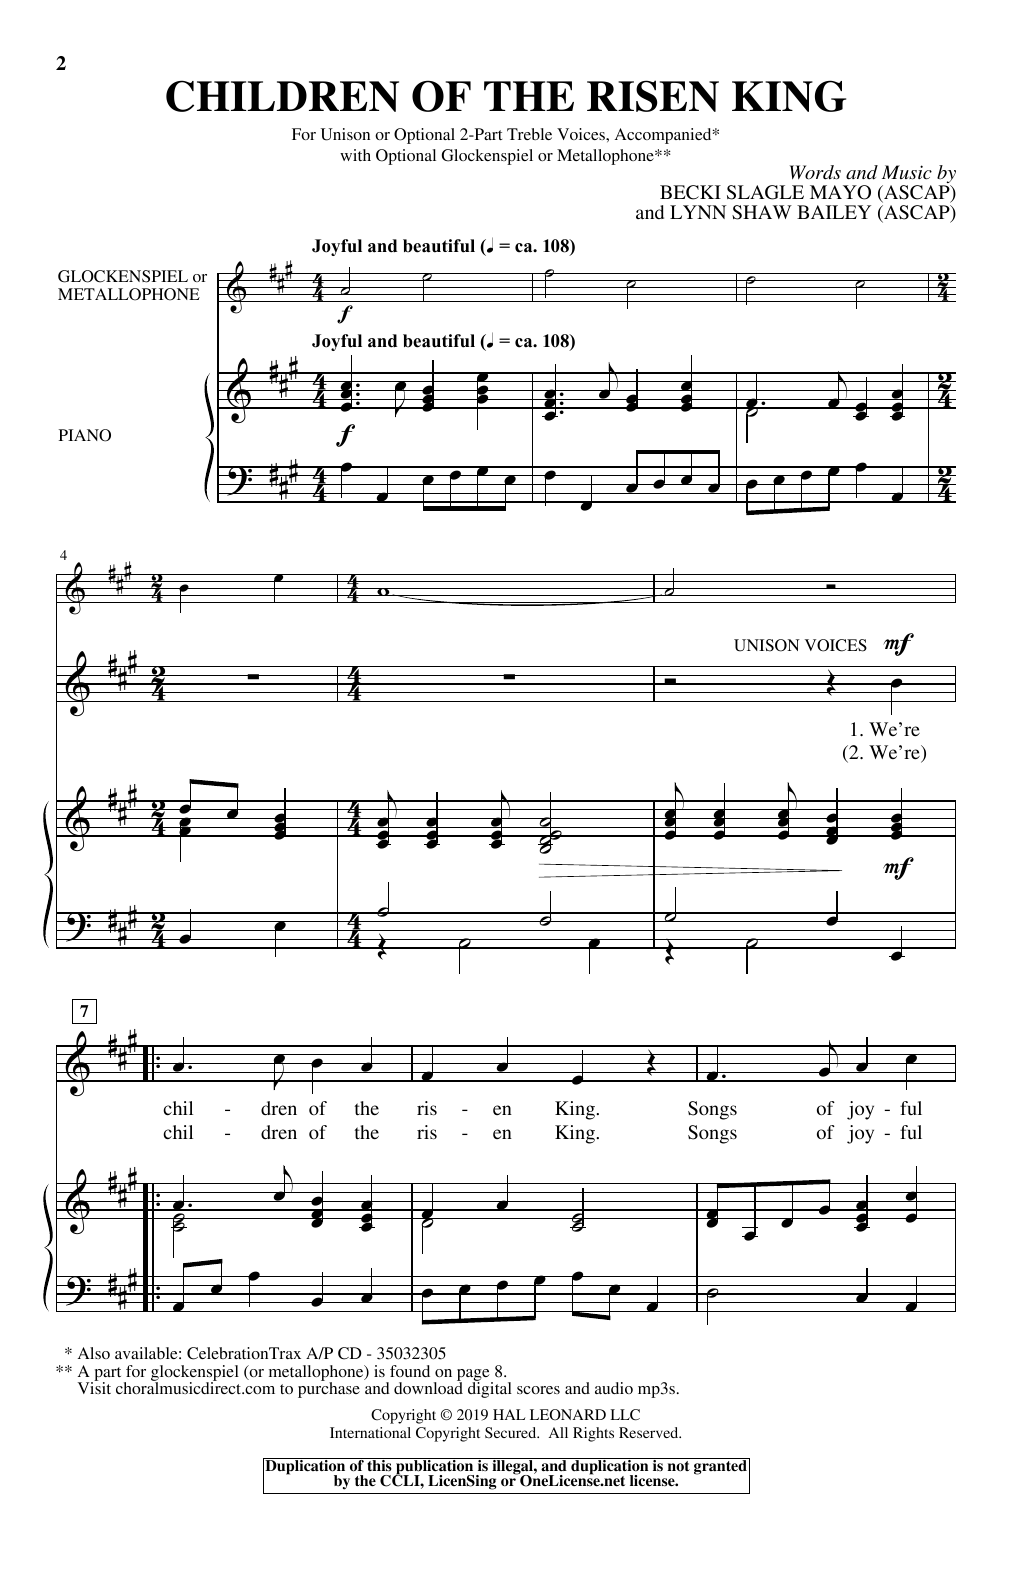 Download Becki Slagle Mayo & Lynn Shaw Bailey 'Children Of The Risen King' Digital Sheet Music Notes & Chords and start playing in minutes